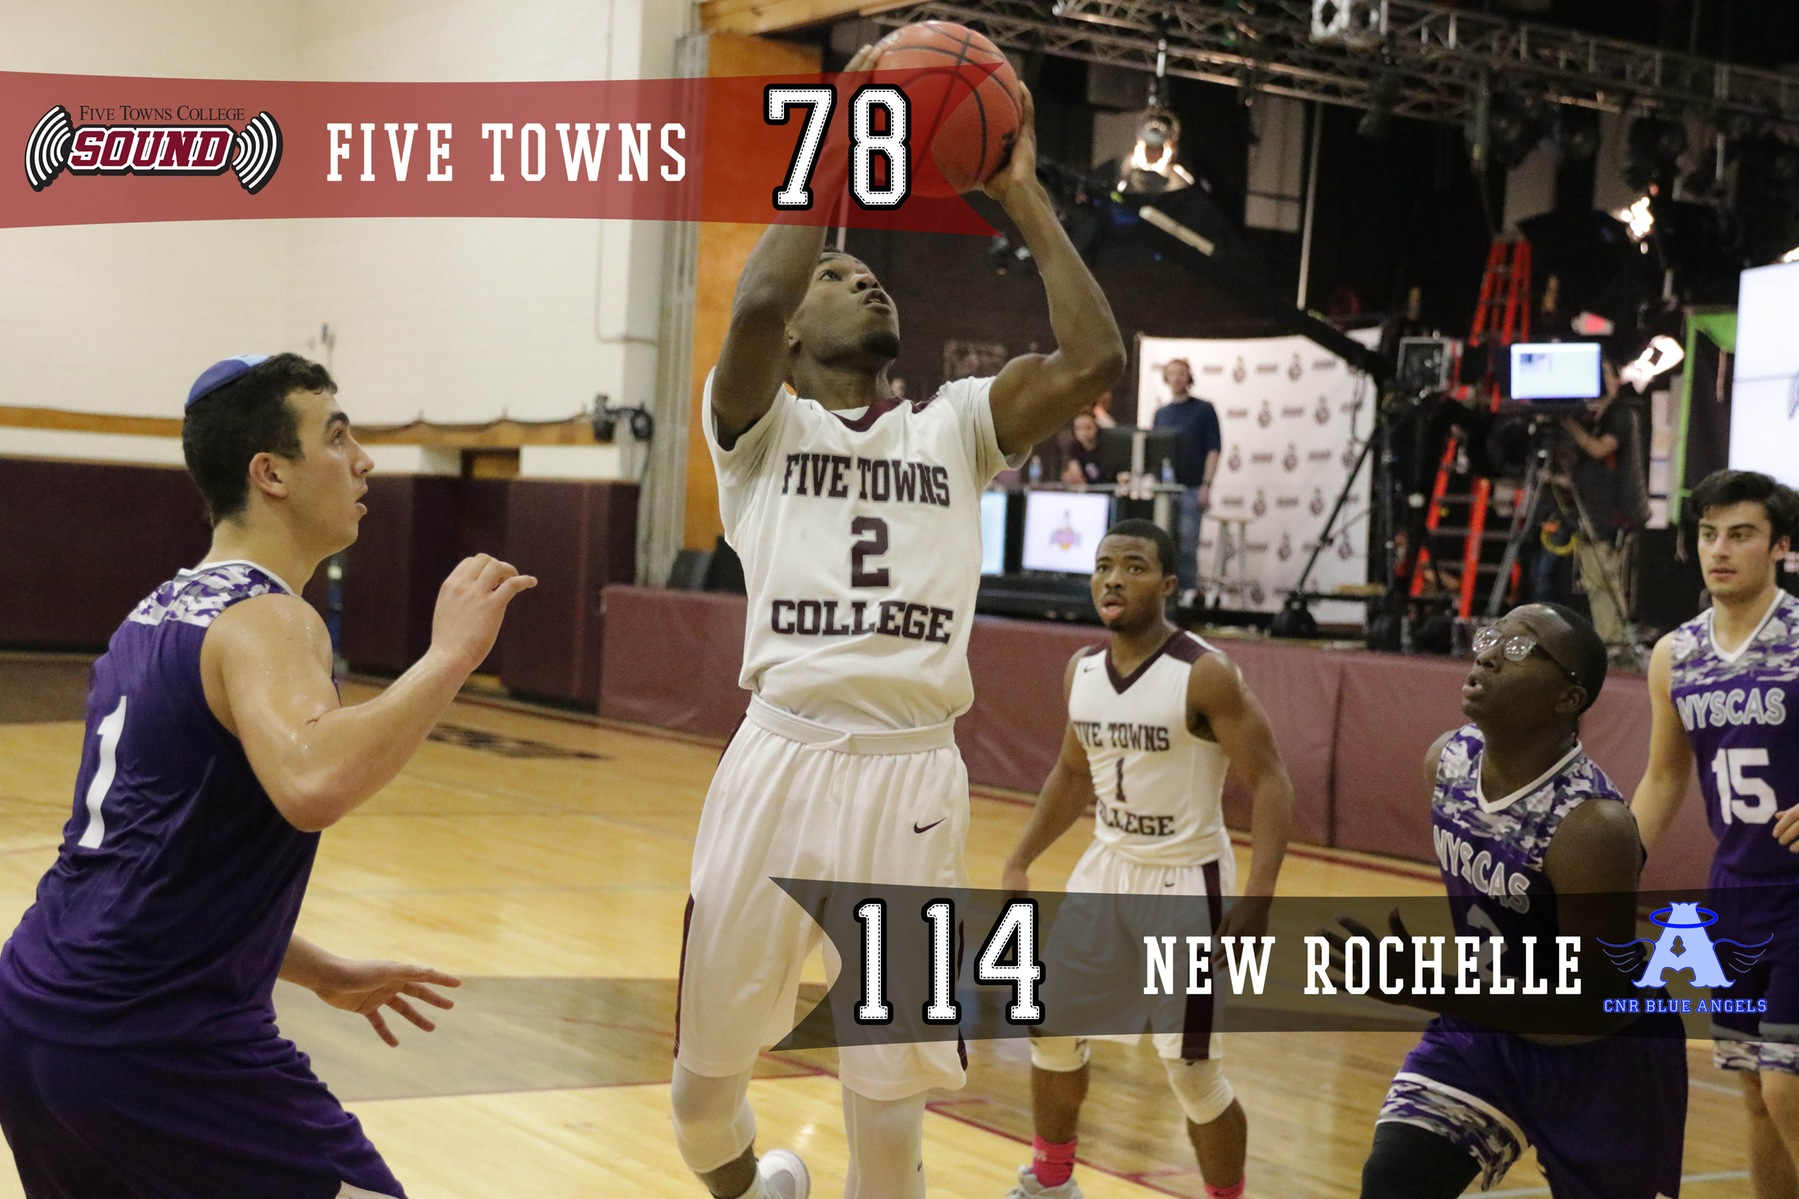 Men's Basketball Falls to College of New Rochelle